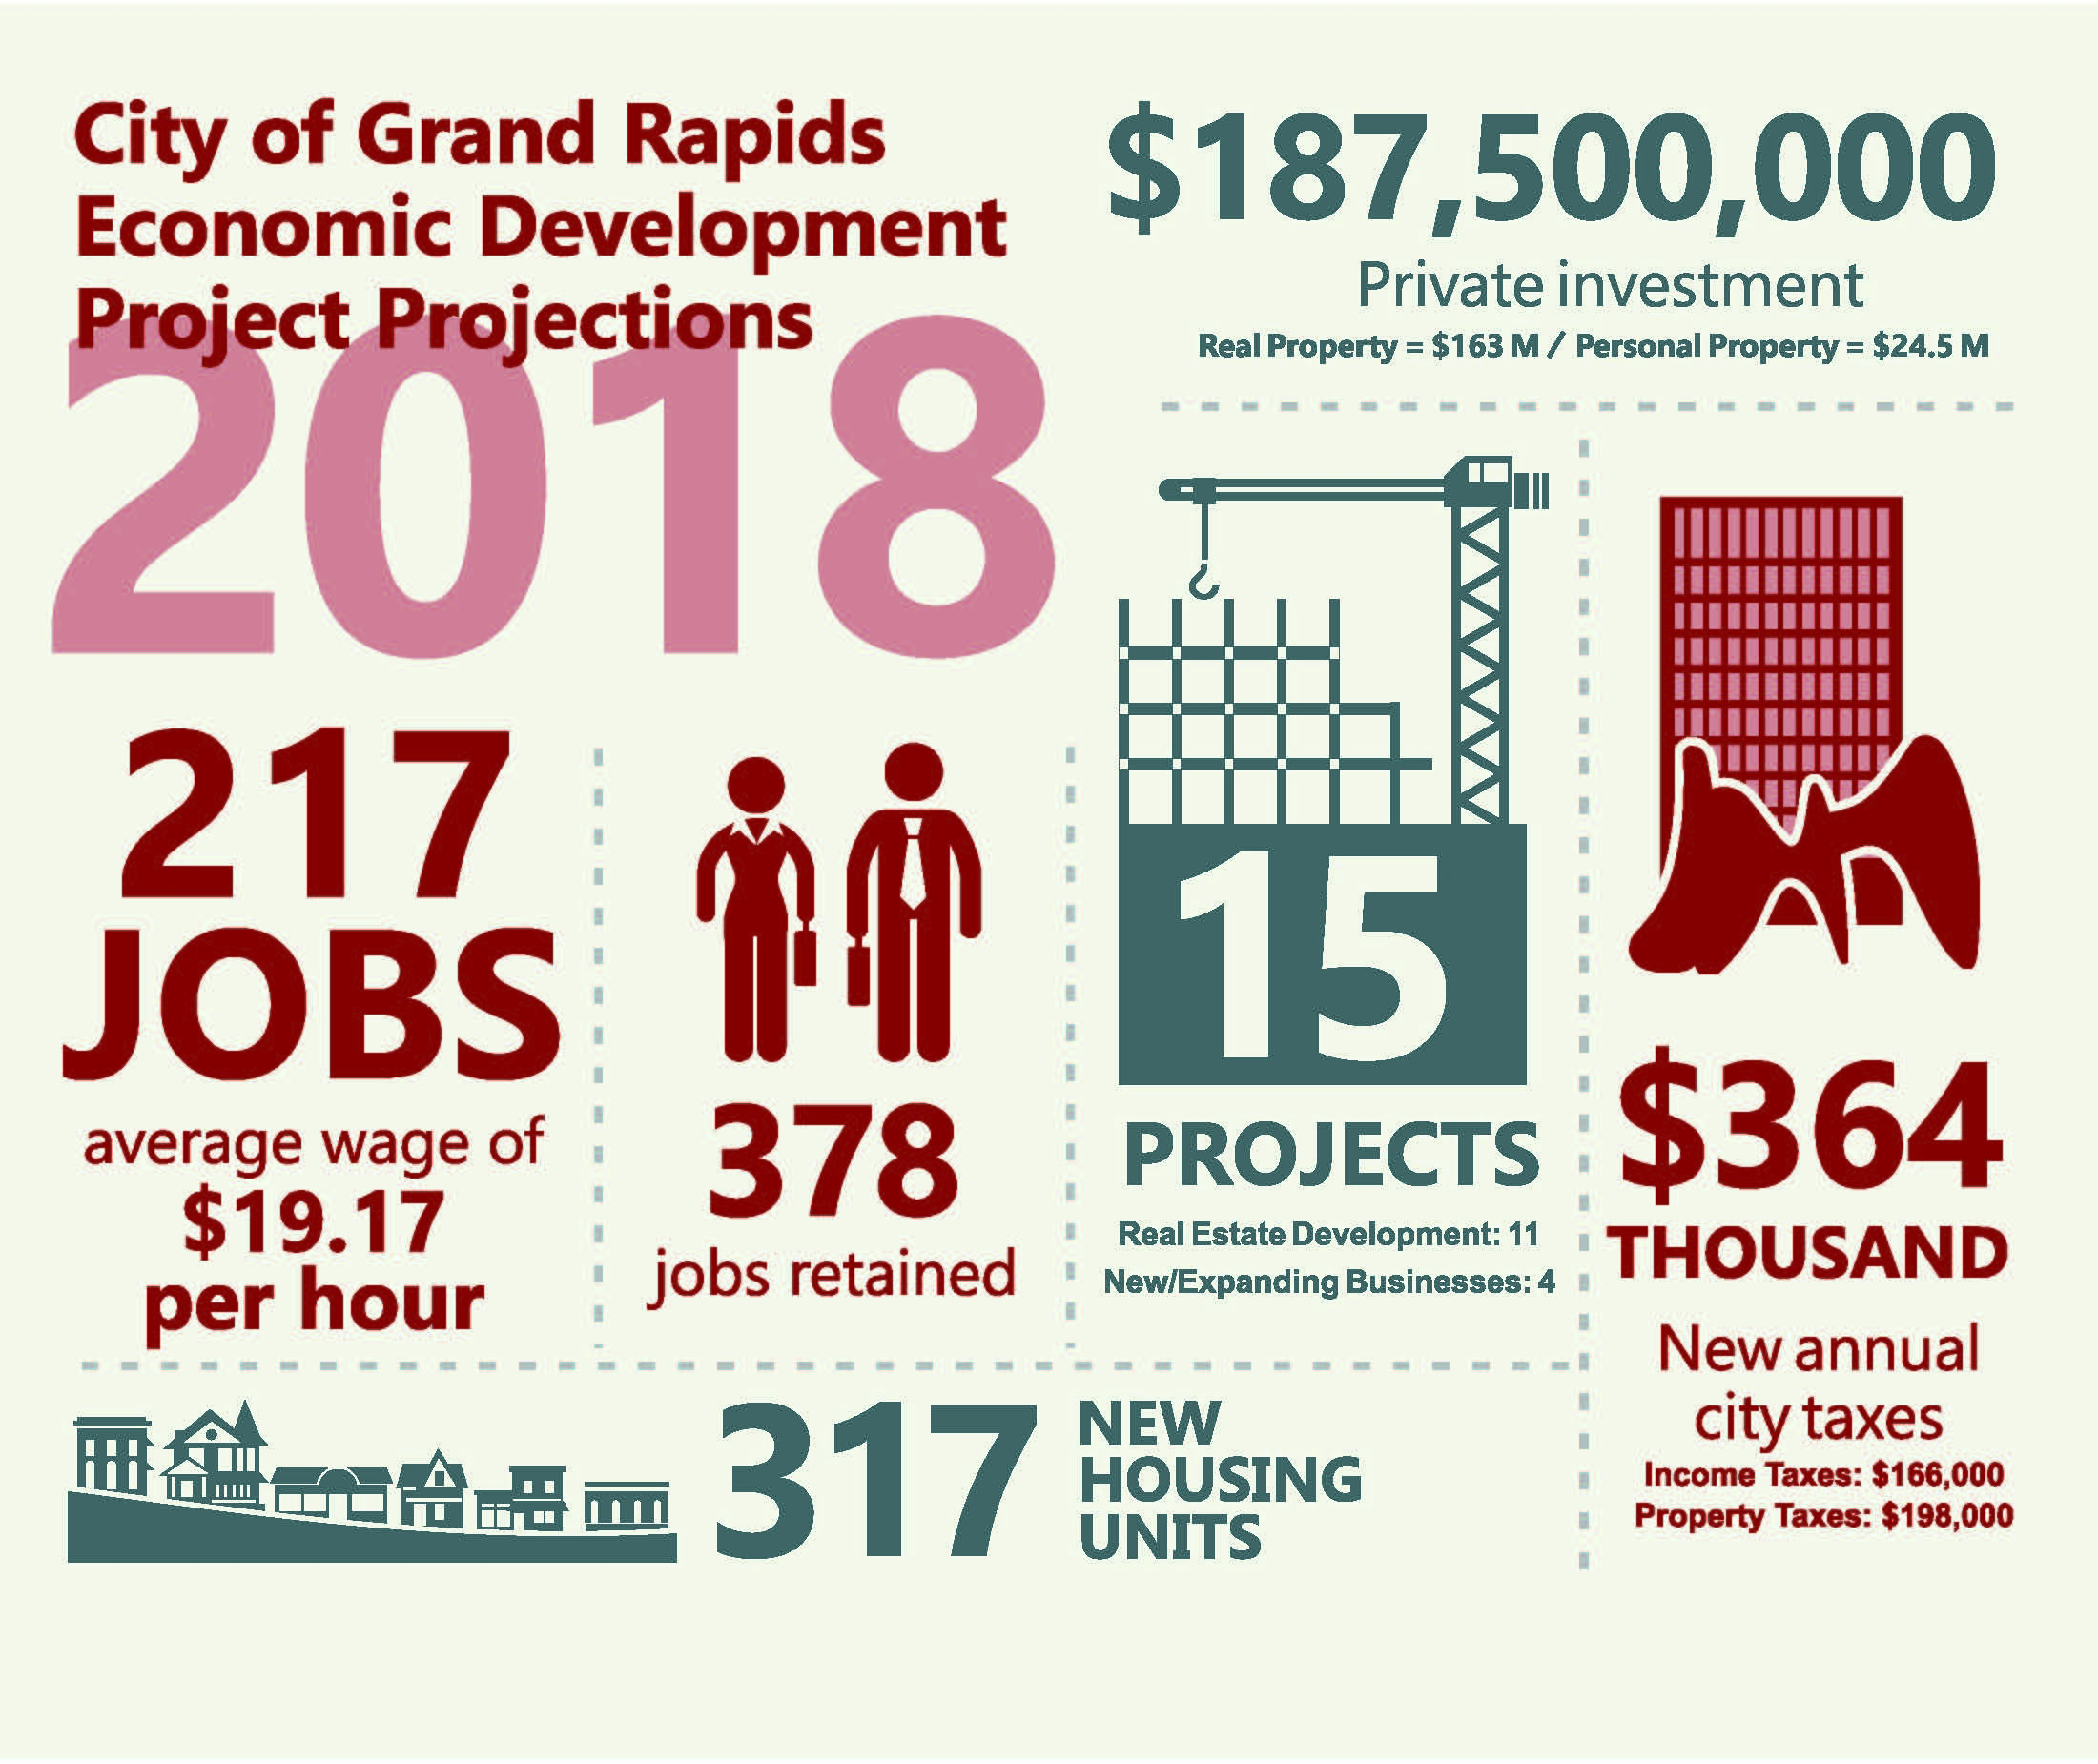 A JPG showing the 2018 outcomes for projects supported through the Economic Development Office